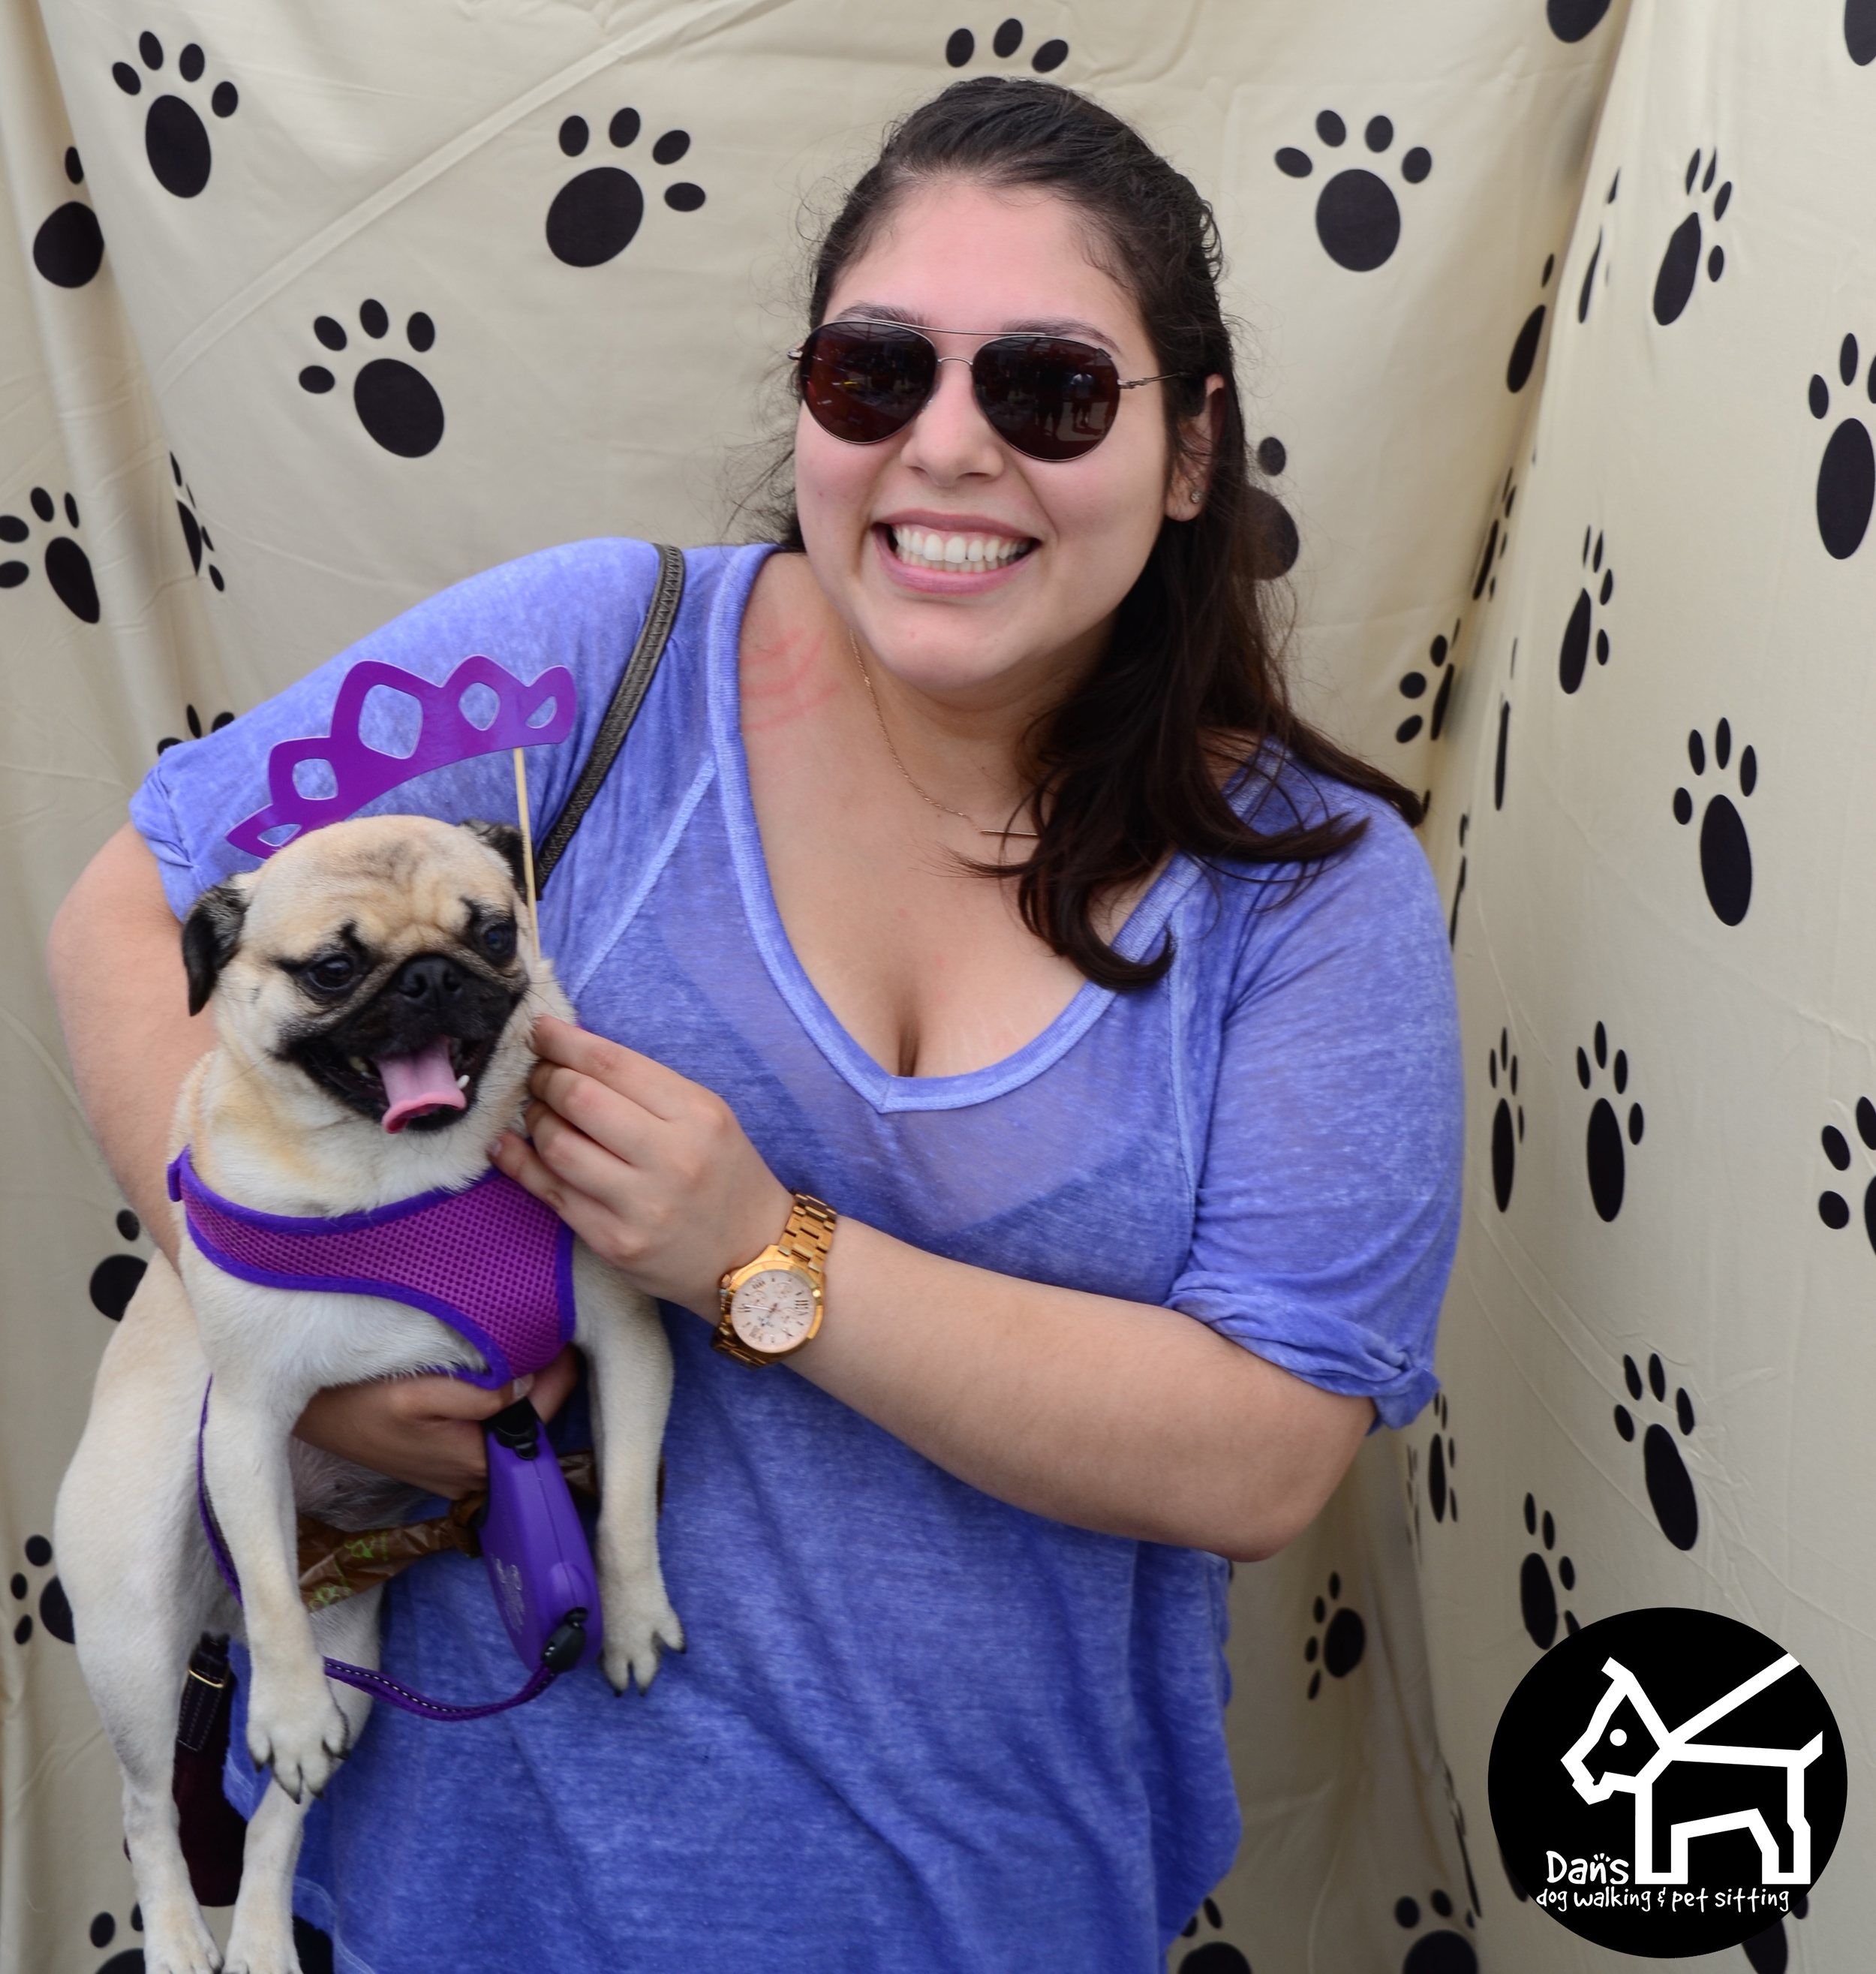 Andrea at the Dan's Dog Walking and Pet Sitting Photobooth.jpg